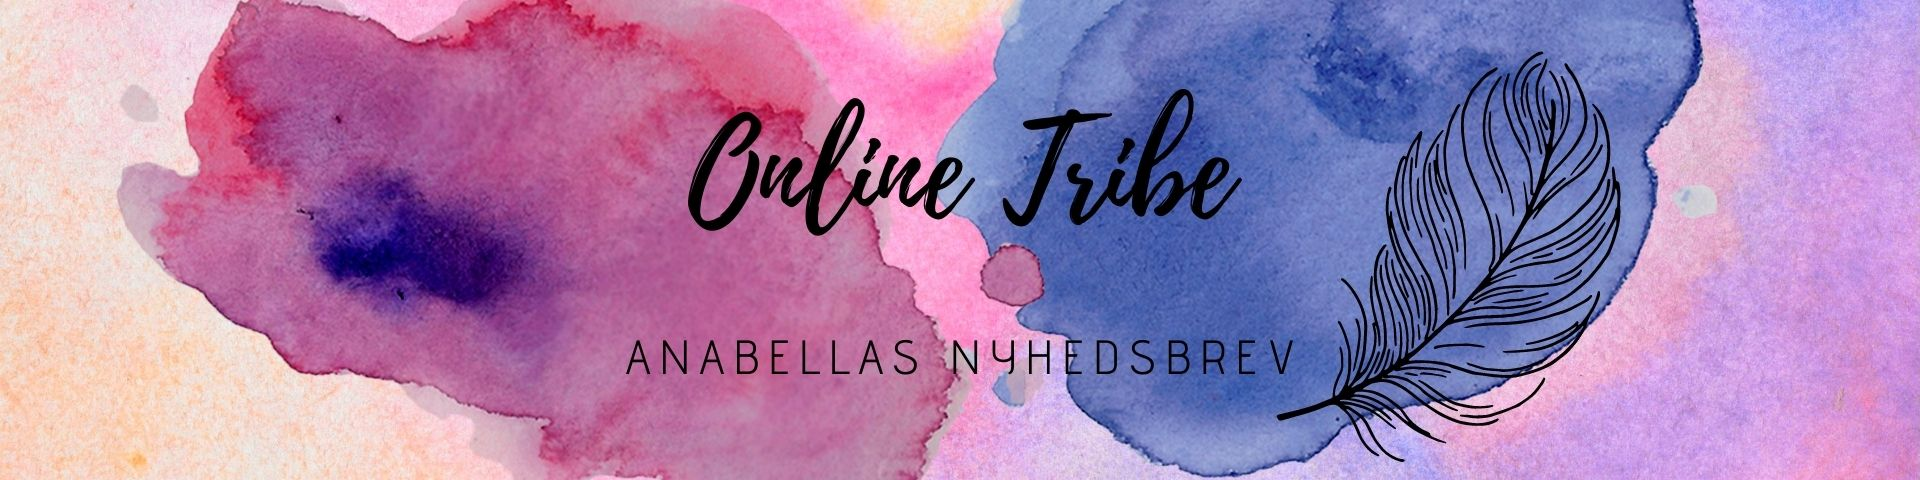 Anabellas tribe